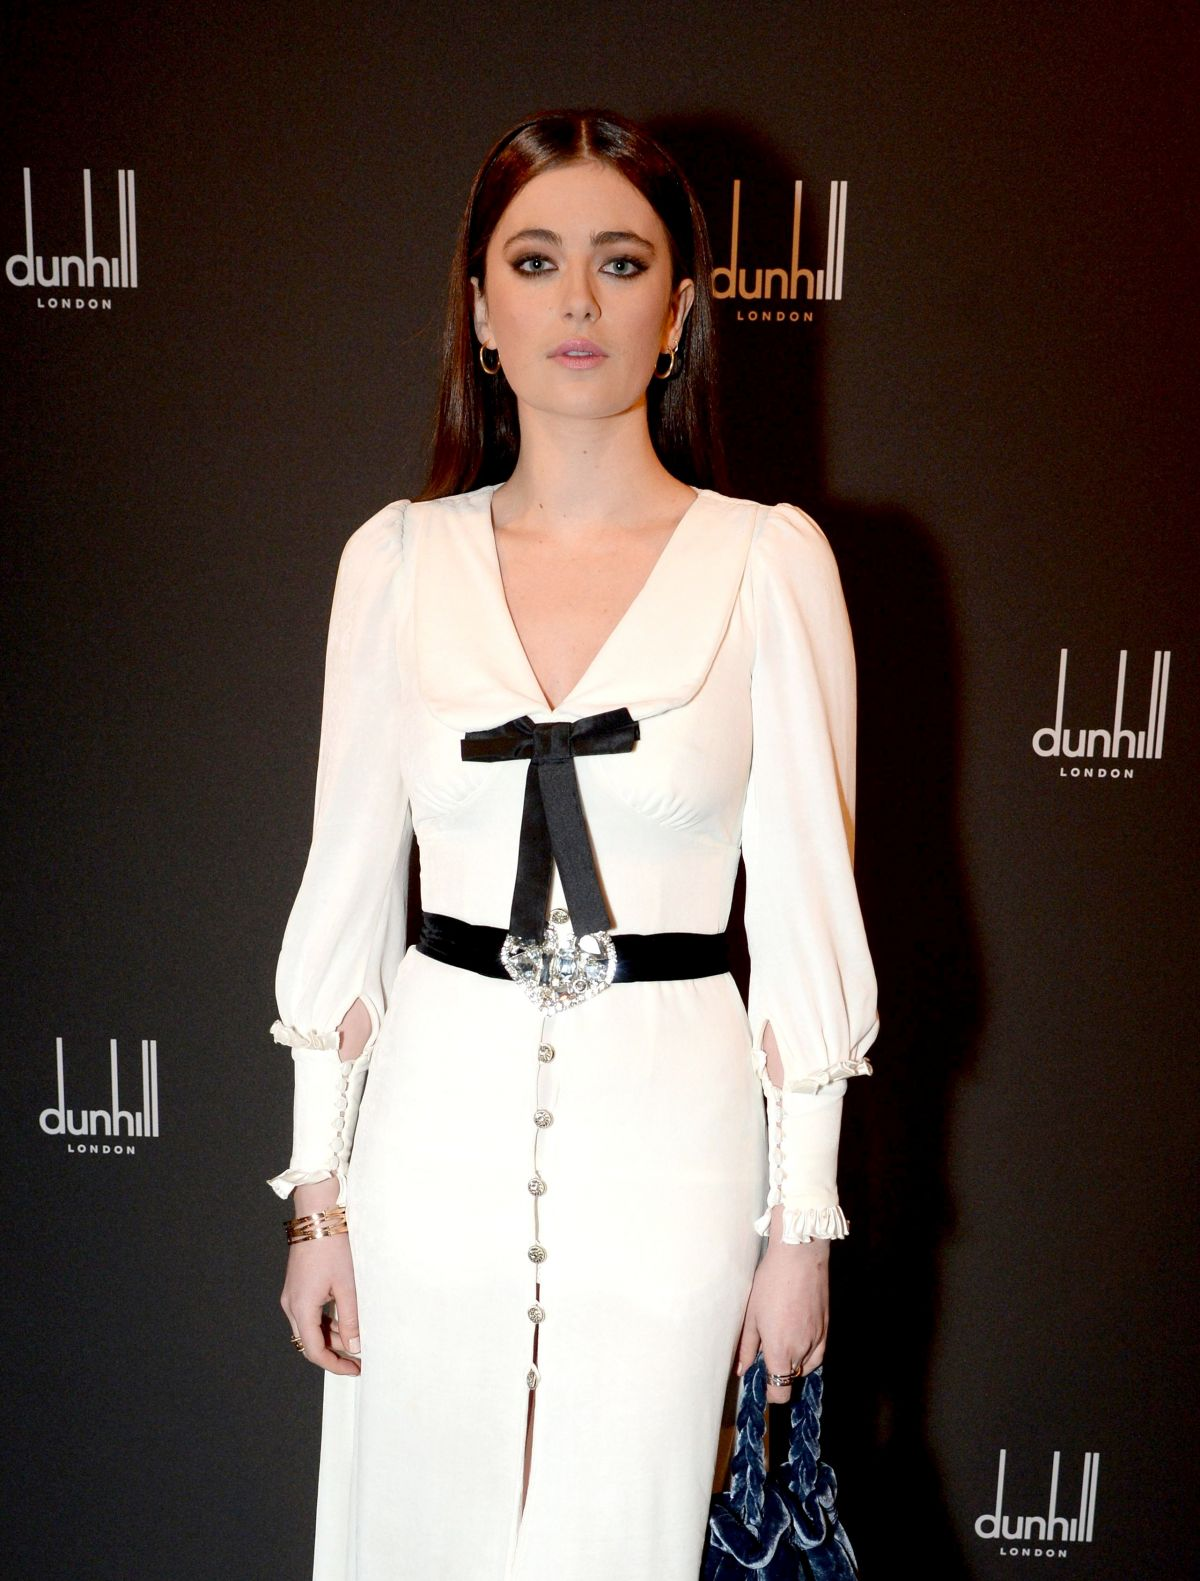 Millie brady launch of the perception in london uk - 2019 year